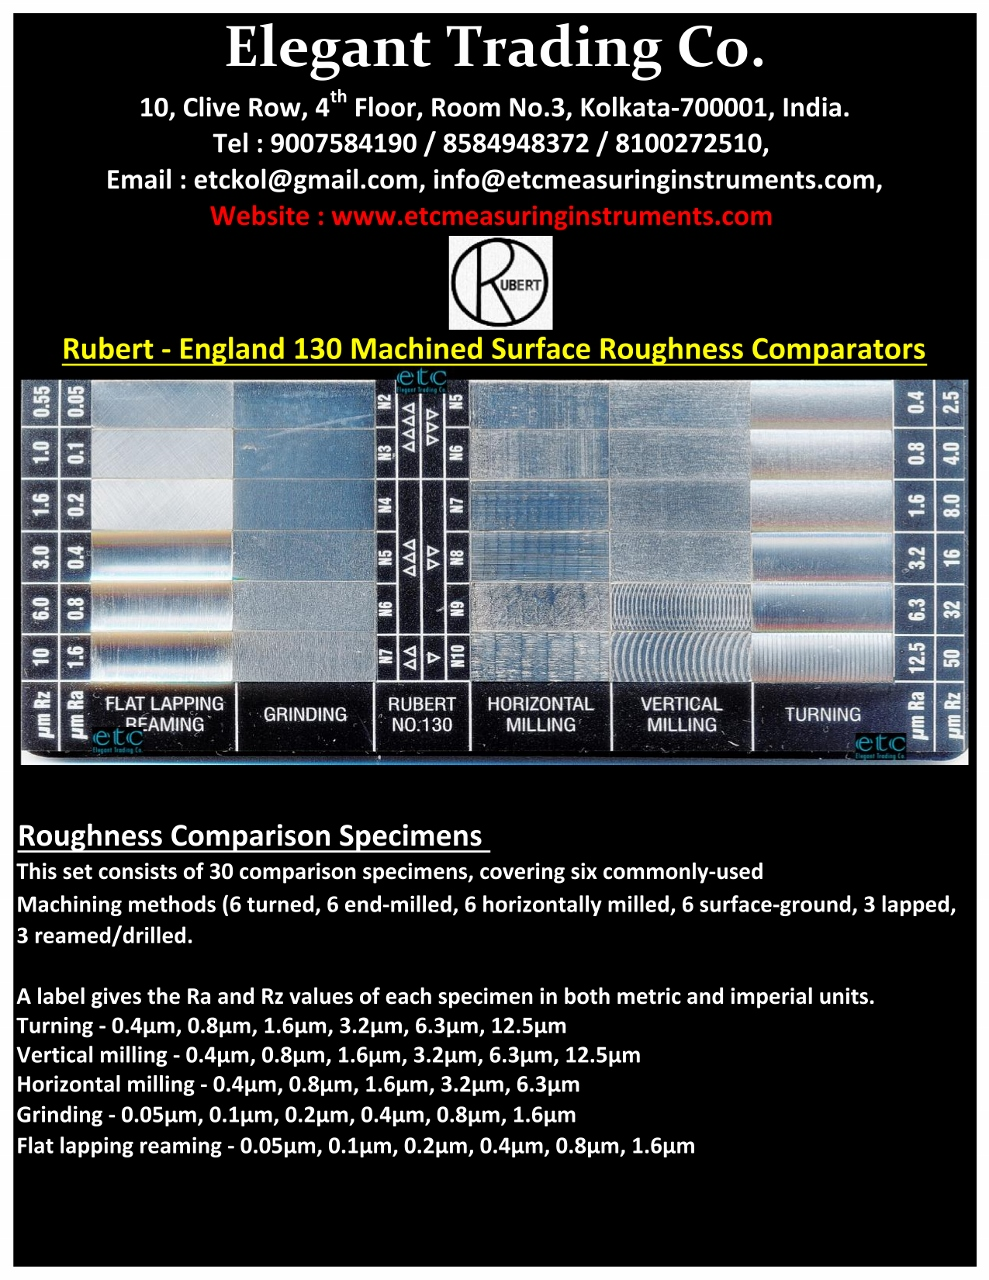 Rubert 130 Machined Surface Roughness Comparator_0001